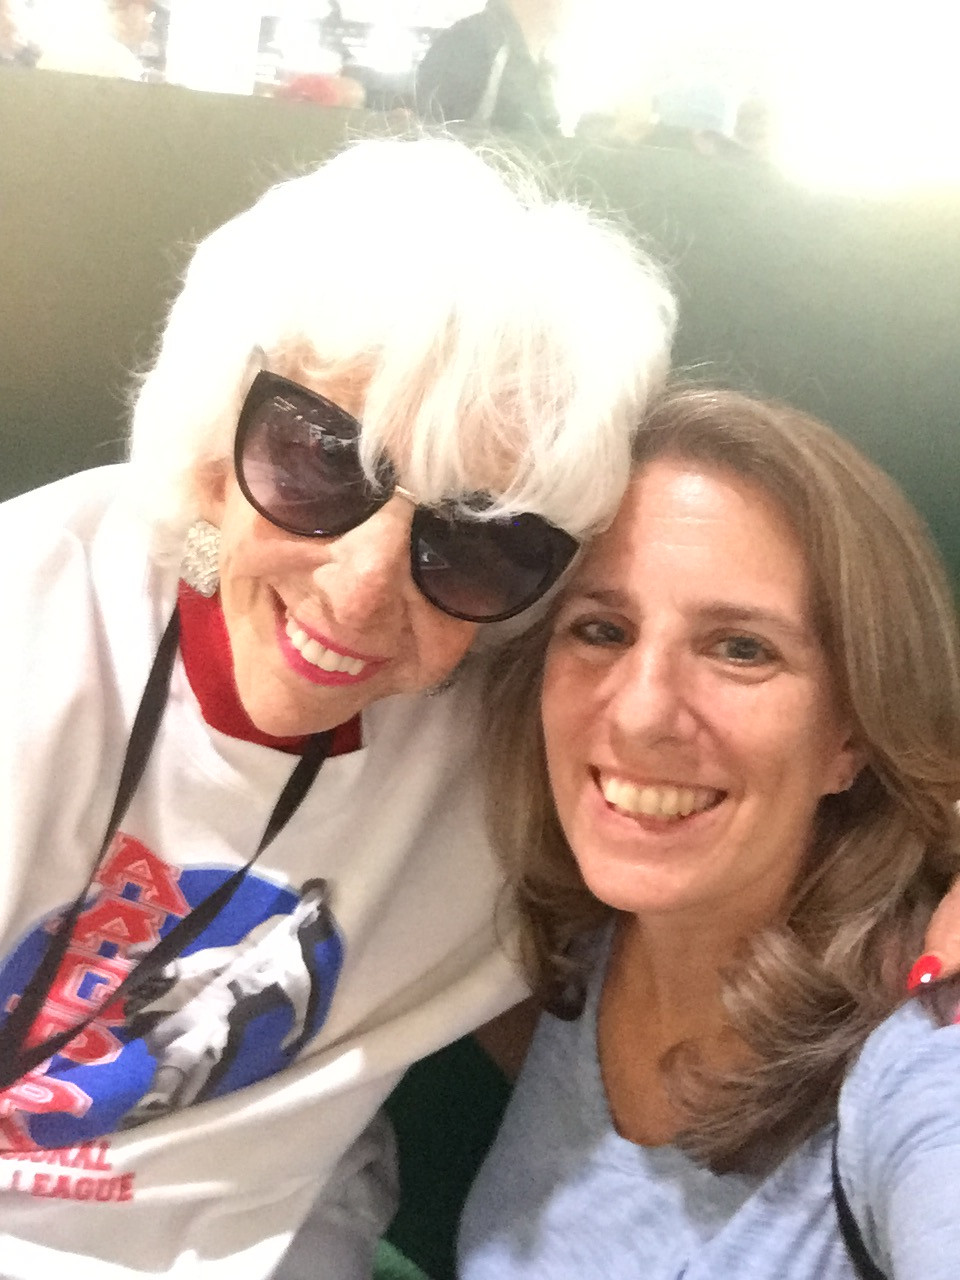 Lauren Meyer (Director) and Maybelle Blair (Player from the AAGPBL)